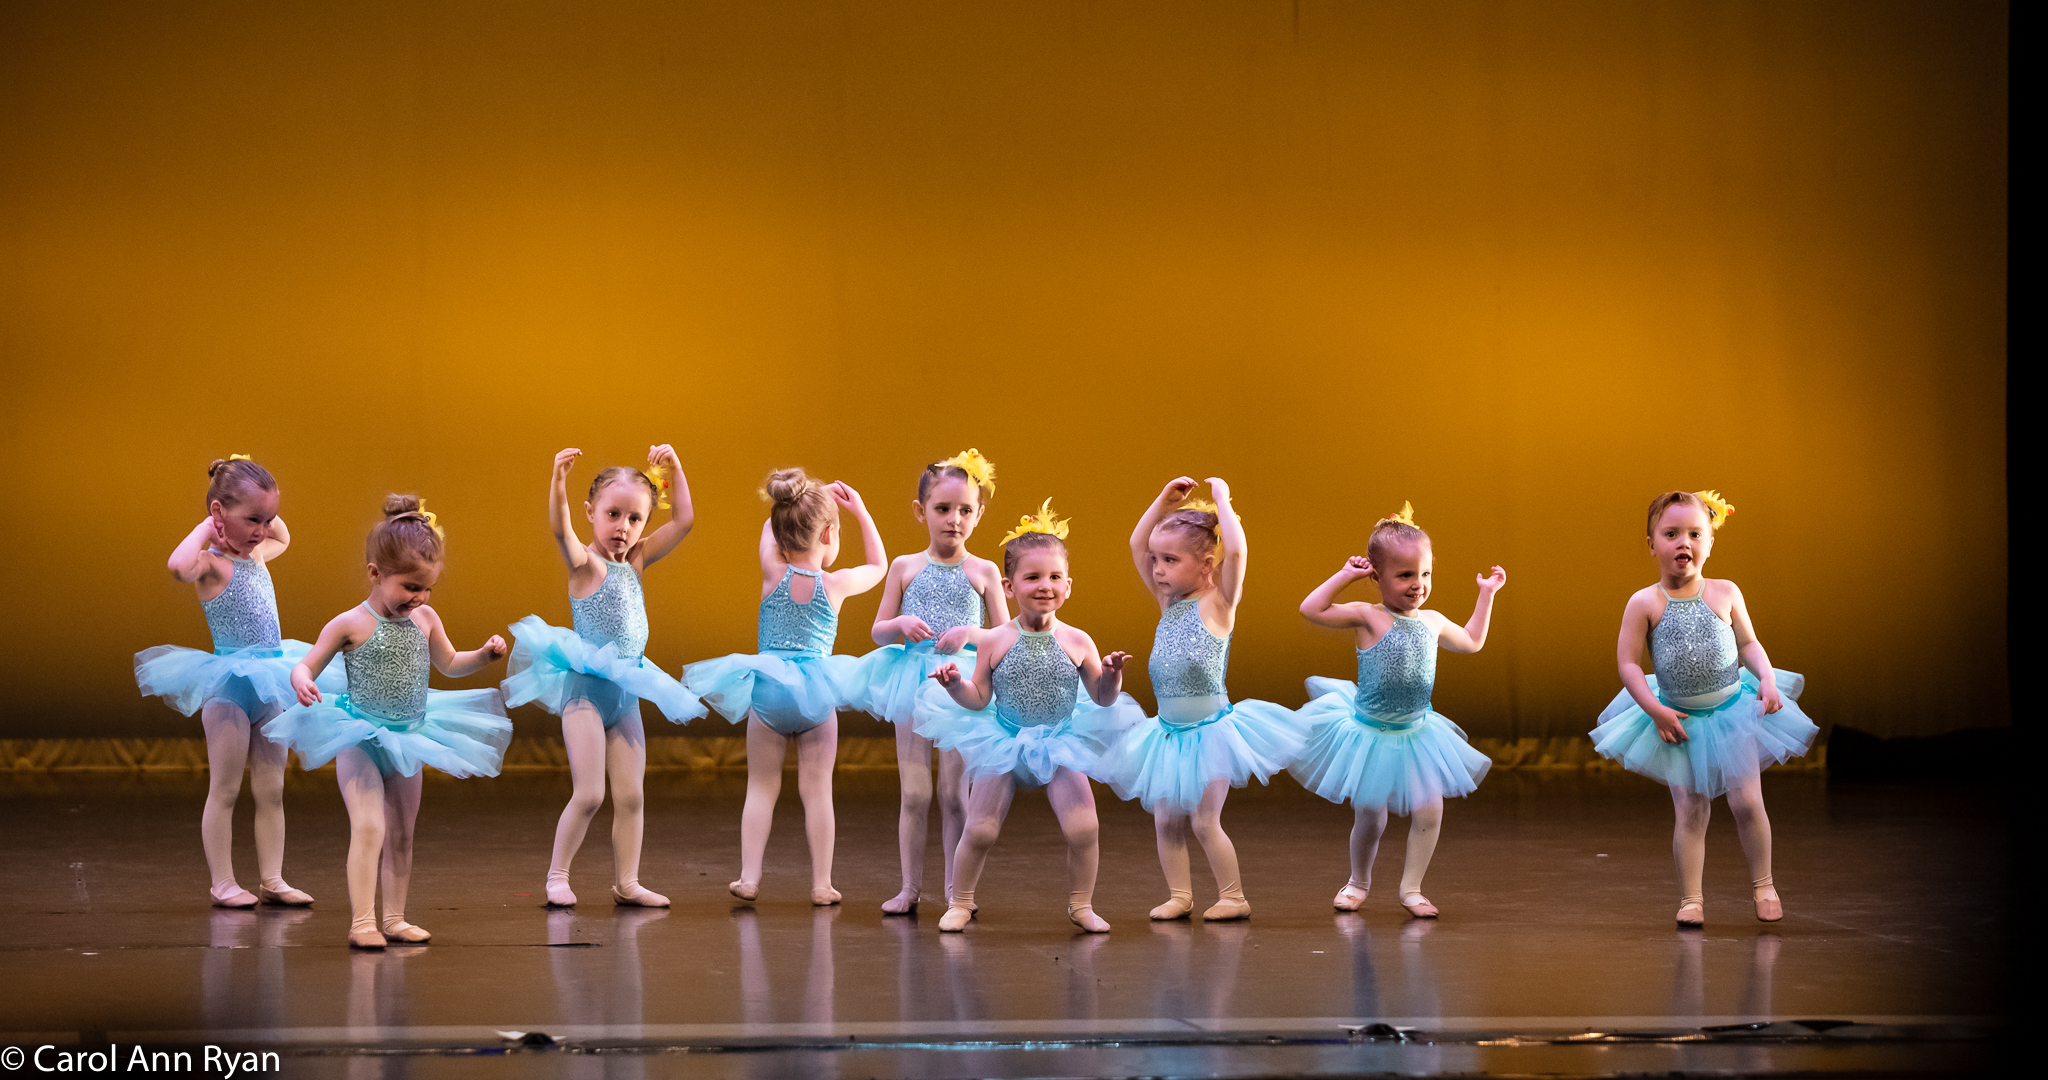 2019_06_05-Dance Recital 35584-1.jpg